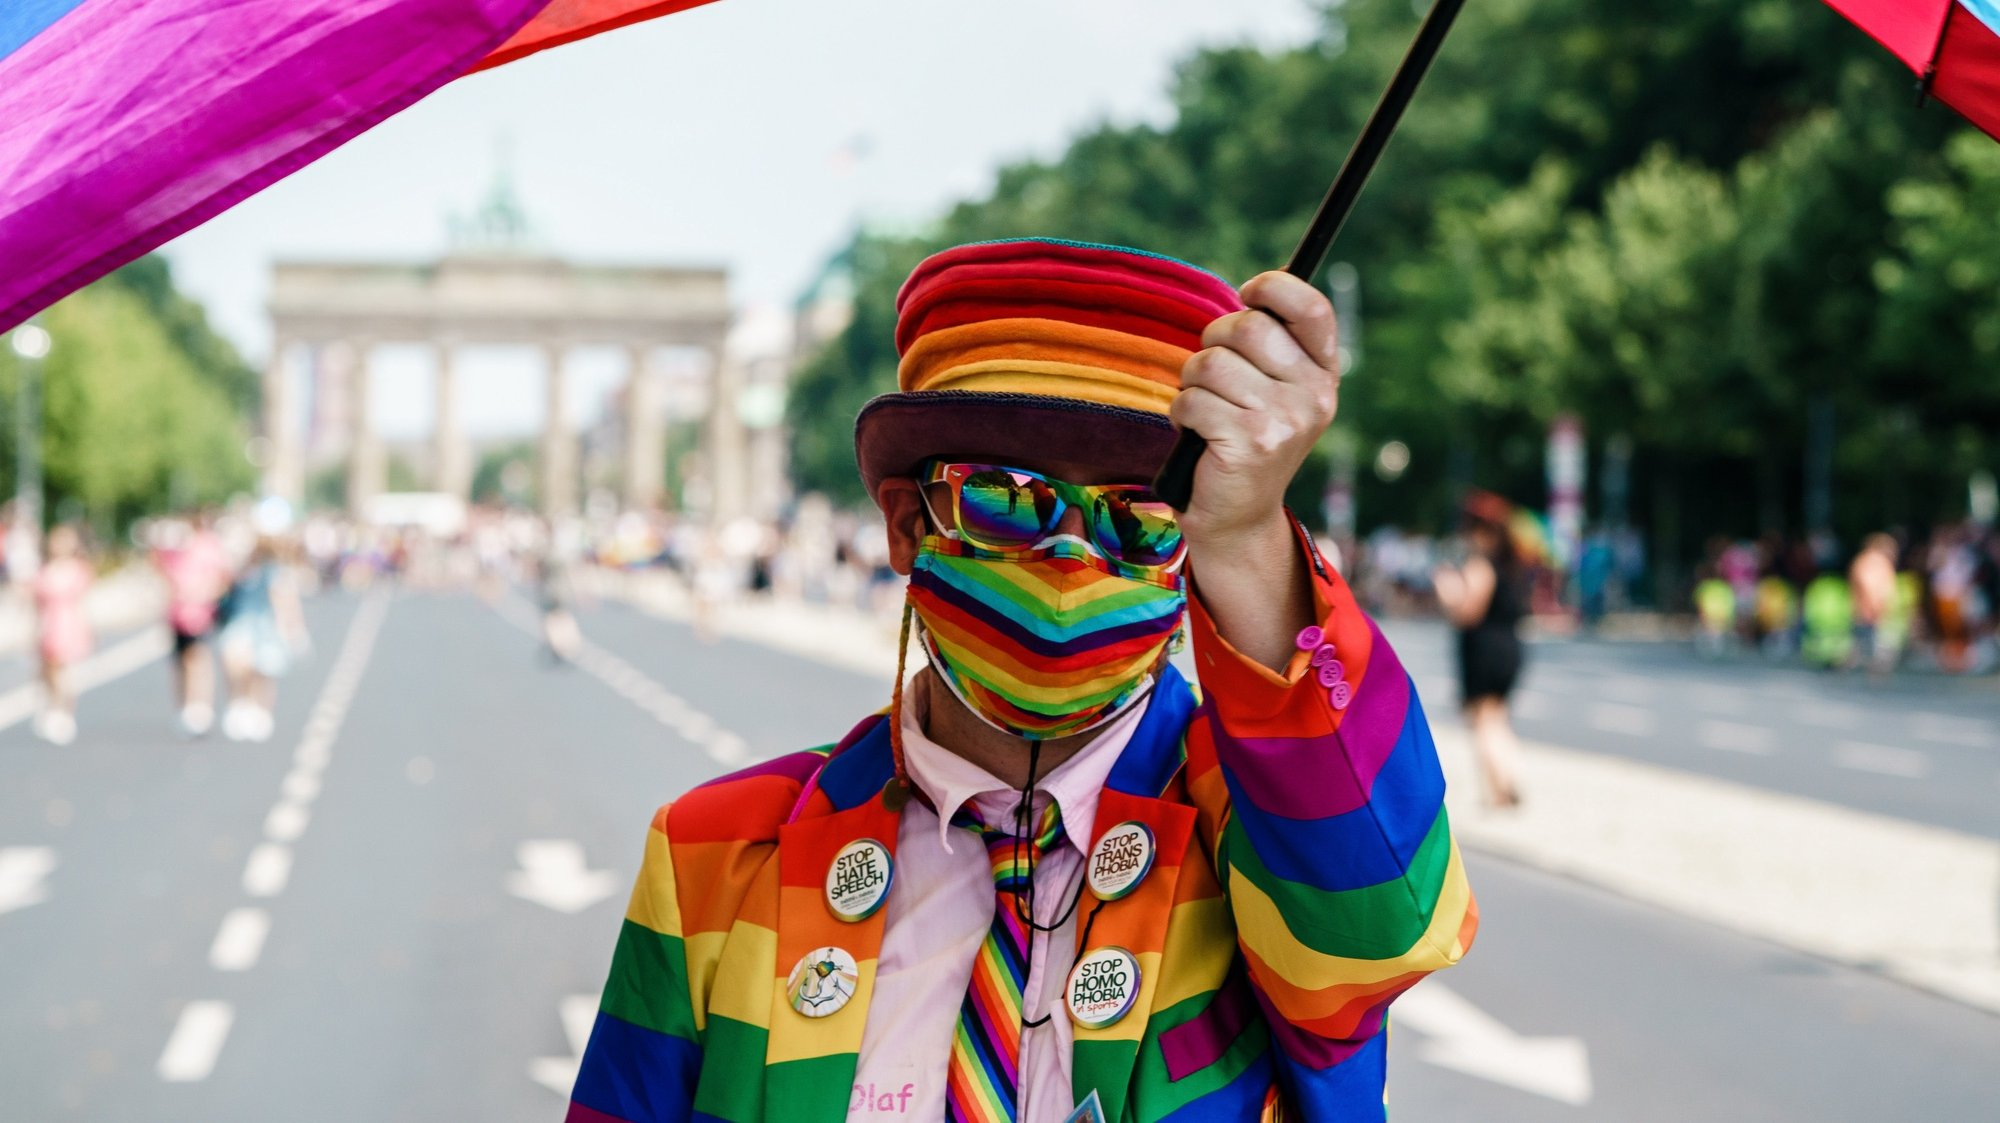 epa09362321 A participant dressed in rainbow colors waves a colorful veil attached to an umbrella in front of the Brandenburg Gate during the 'CSD Berlin 2021' Christopher Street Day parade in Berlin, Germany, 24 July 2021. Due to the Coronavirus pandemic that causes the Covid-19 disease, this year's CSD demonstration only consists of five trucks and an expected crowd of some 20,000 participants. CSD is an annual European LGBTIQA* (lesbian, gay, bisexual, transgender, intersex, queer/questioning, asexual) celebration held in various cities across Europe for the rights of LGBTIQA* people.  EPA/CLEMENS BILAN